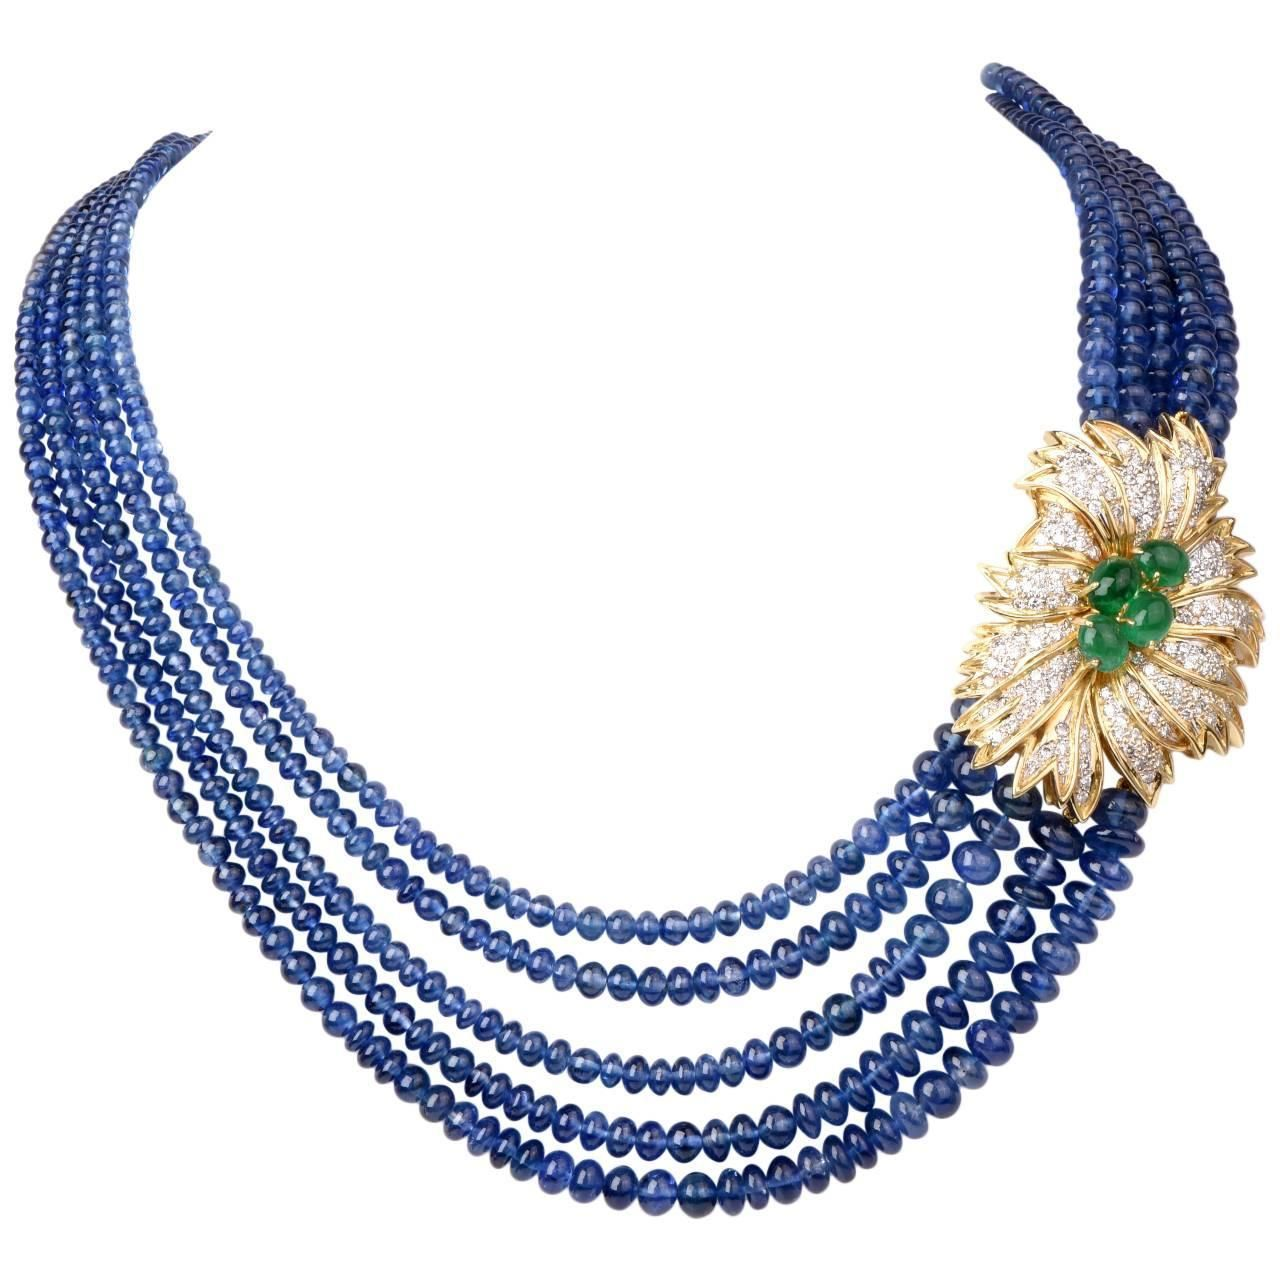 22 carat gold floral designer pendant with multiple beads chain and - Brilliant Sapphire Beaded Necklace With Emerald Diamond Gold Floral Motif Clasp